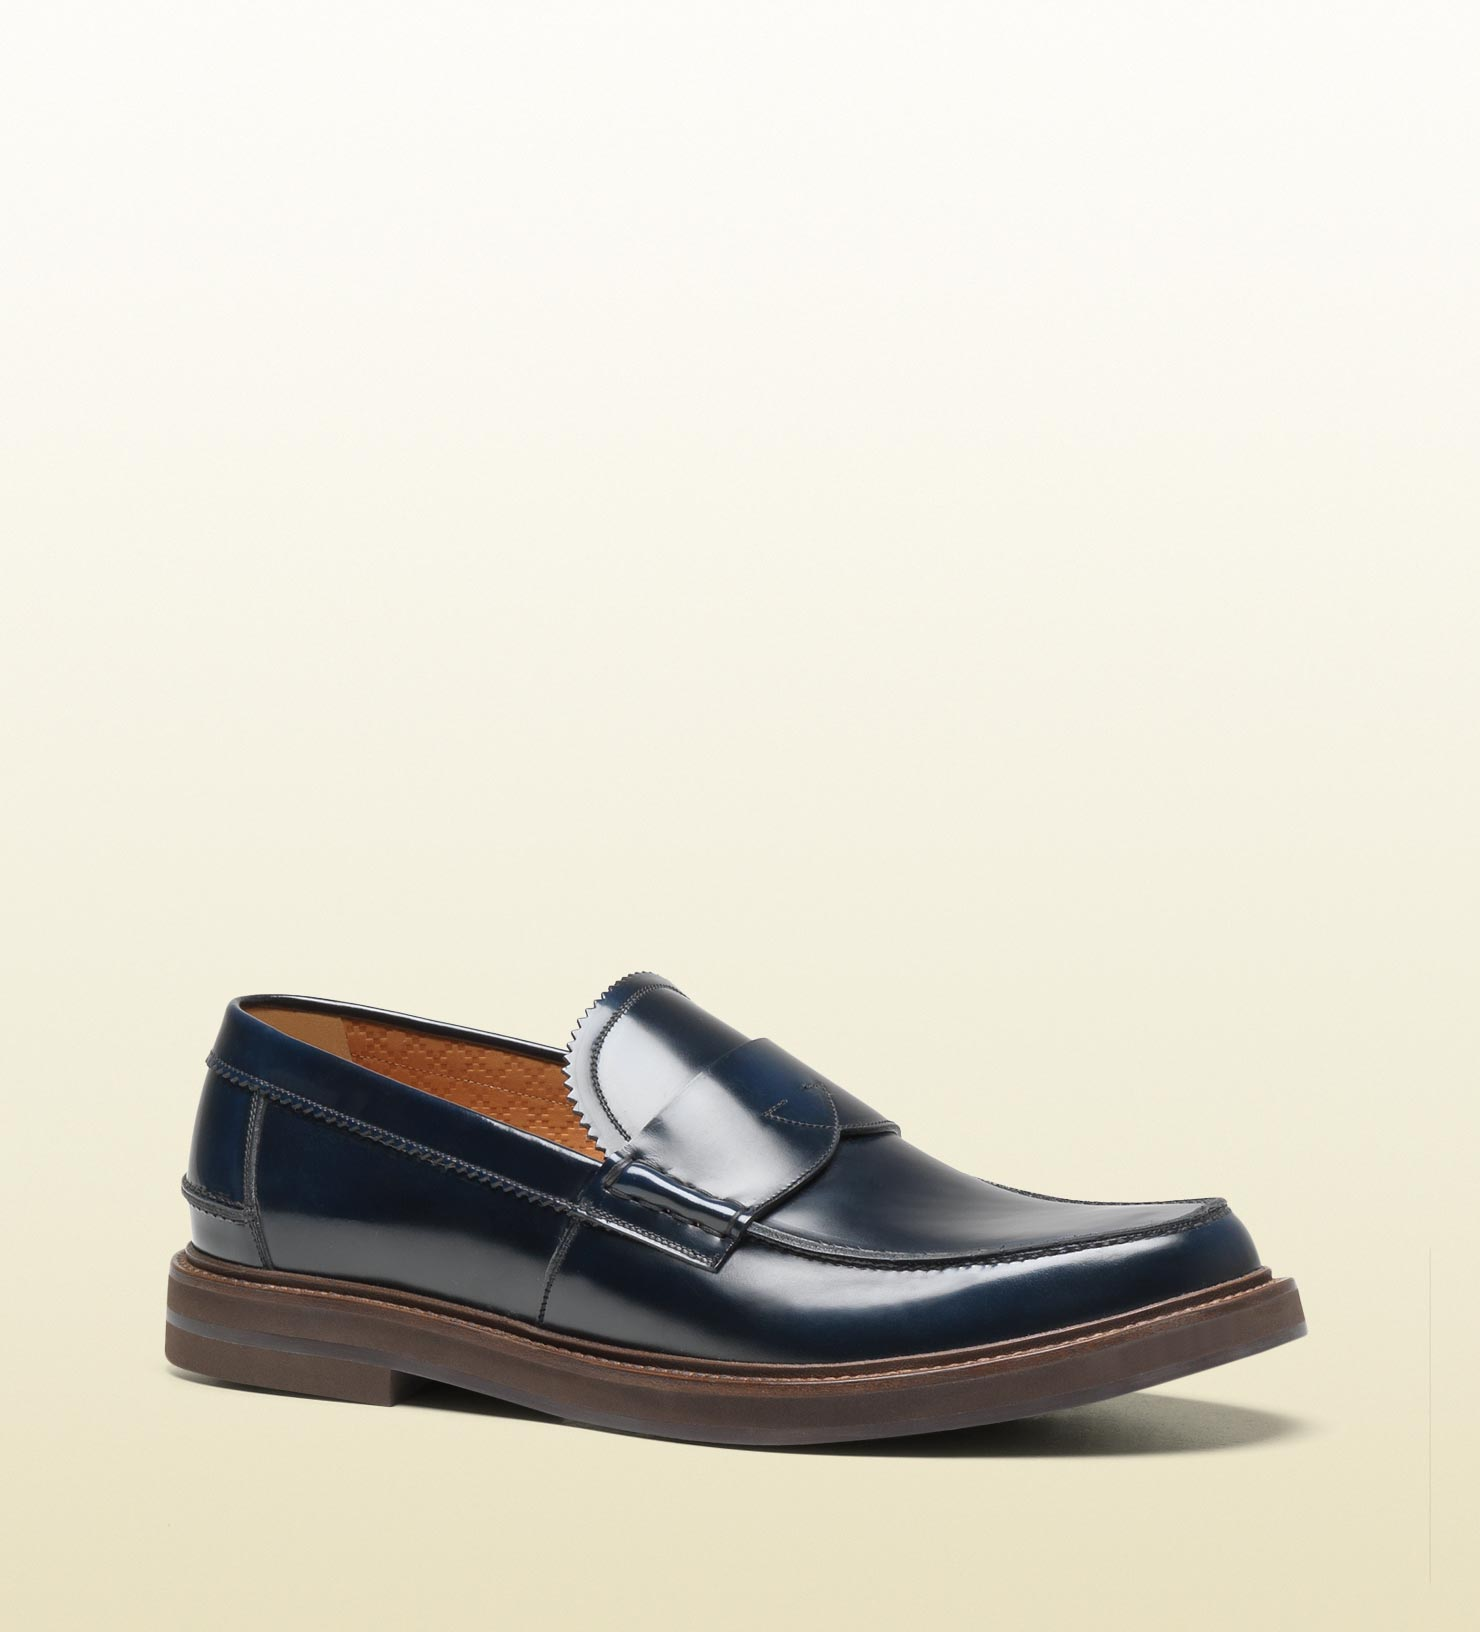 b402625a481 Lyst - Gucci Penny Loafer With Rubber Sole In Black For Men